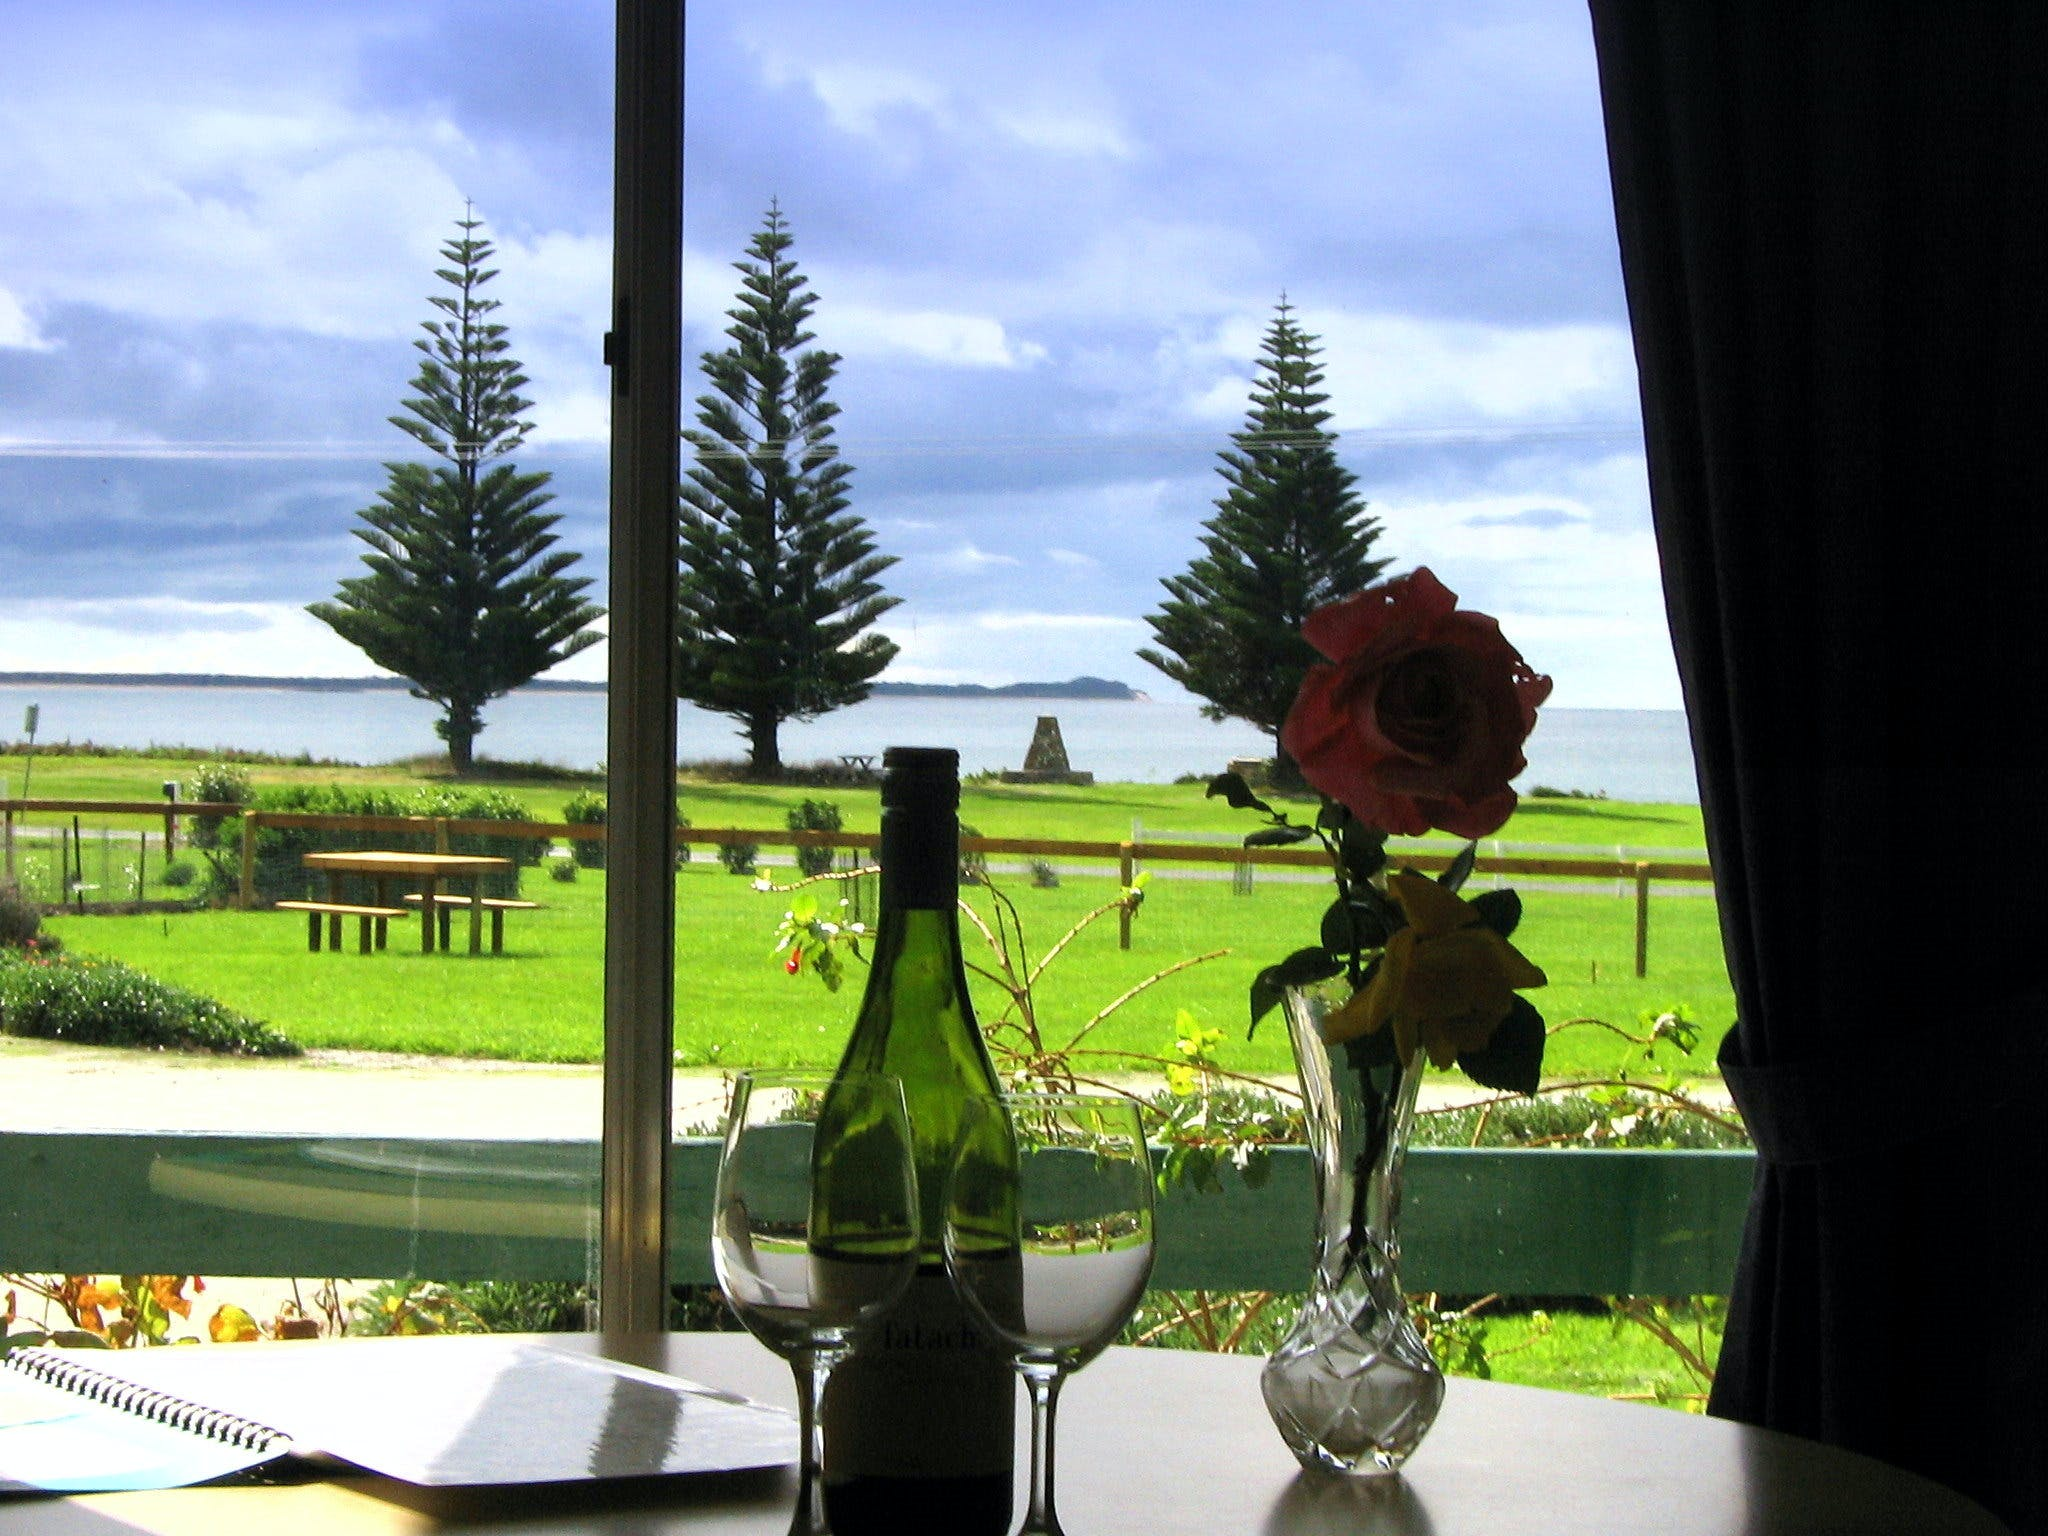 King Island Accommodation Cottages - Accommodation in Surfers Paradise